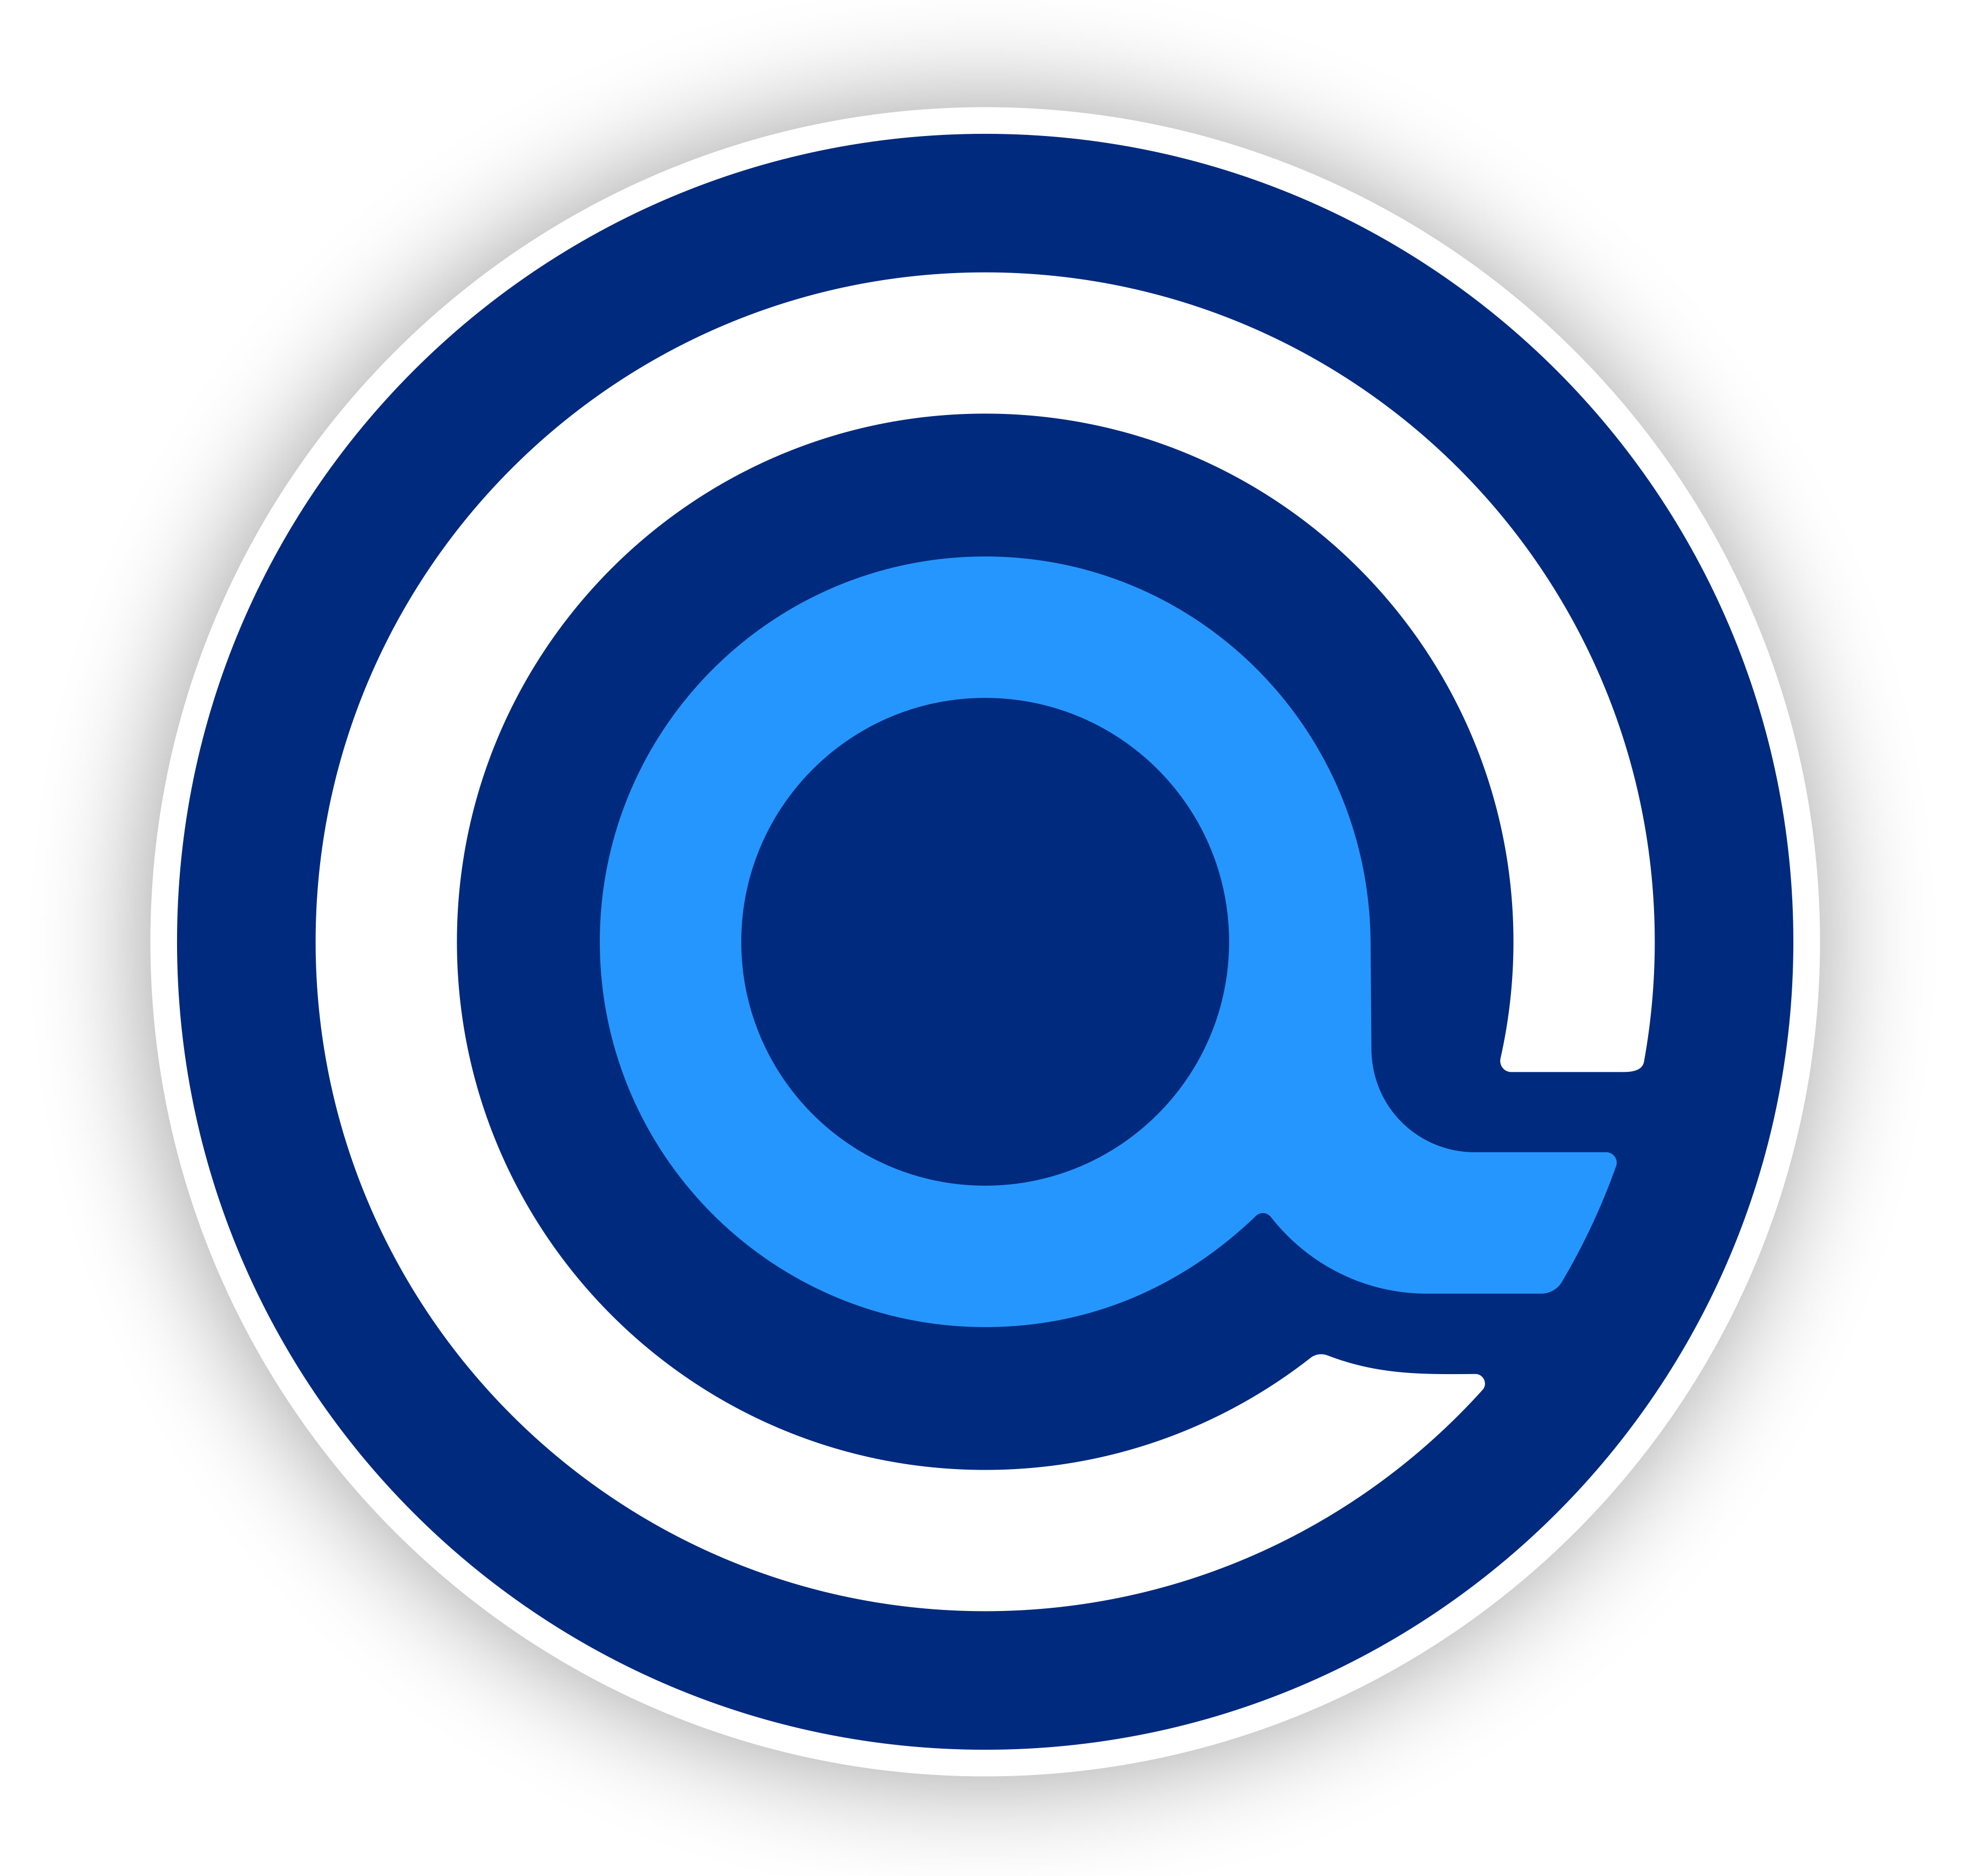 """Accessible.org iconic circle """"a"""" logo symbolizing accessibility and inclusiveness."""